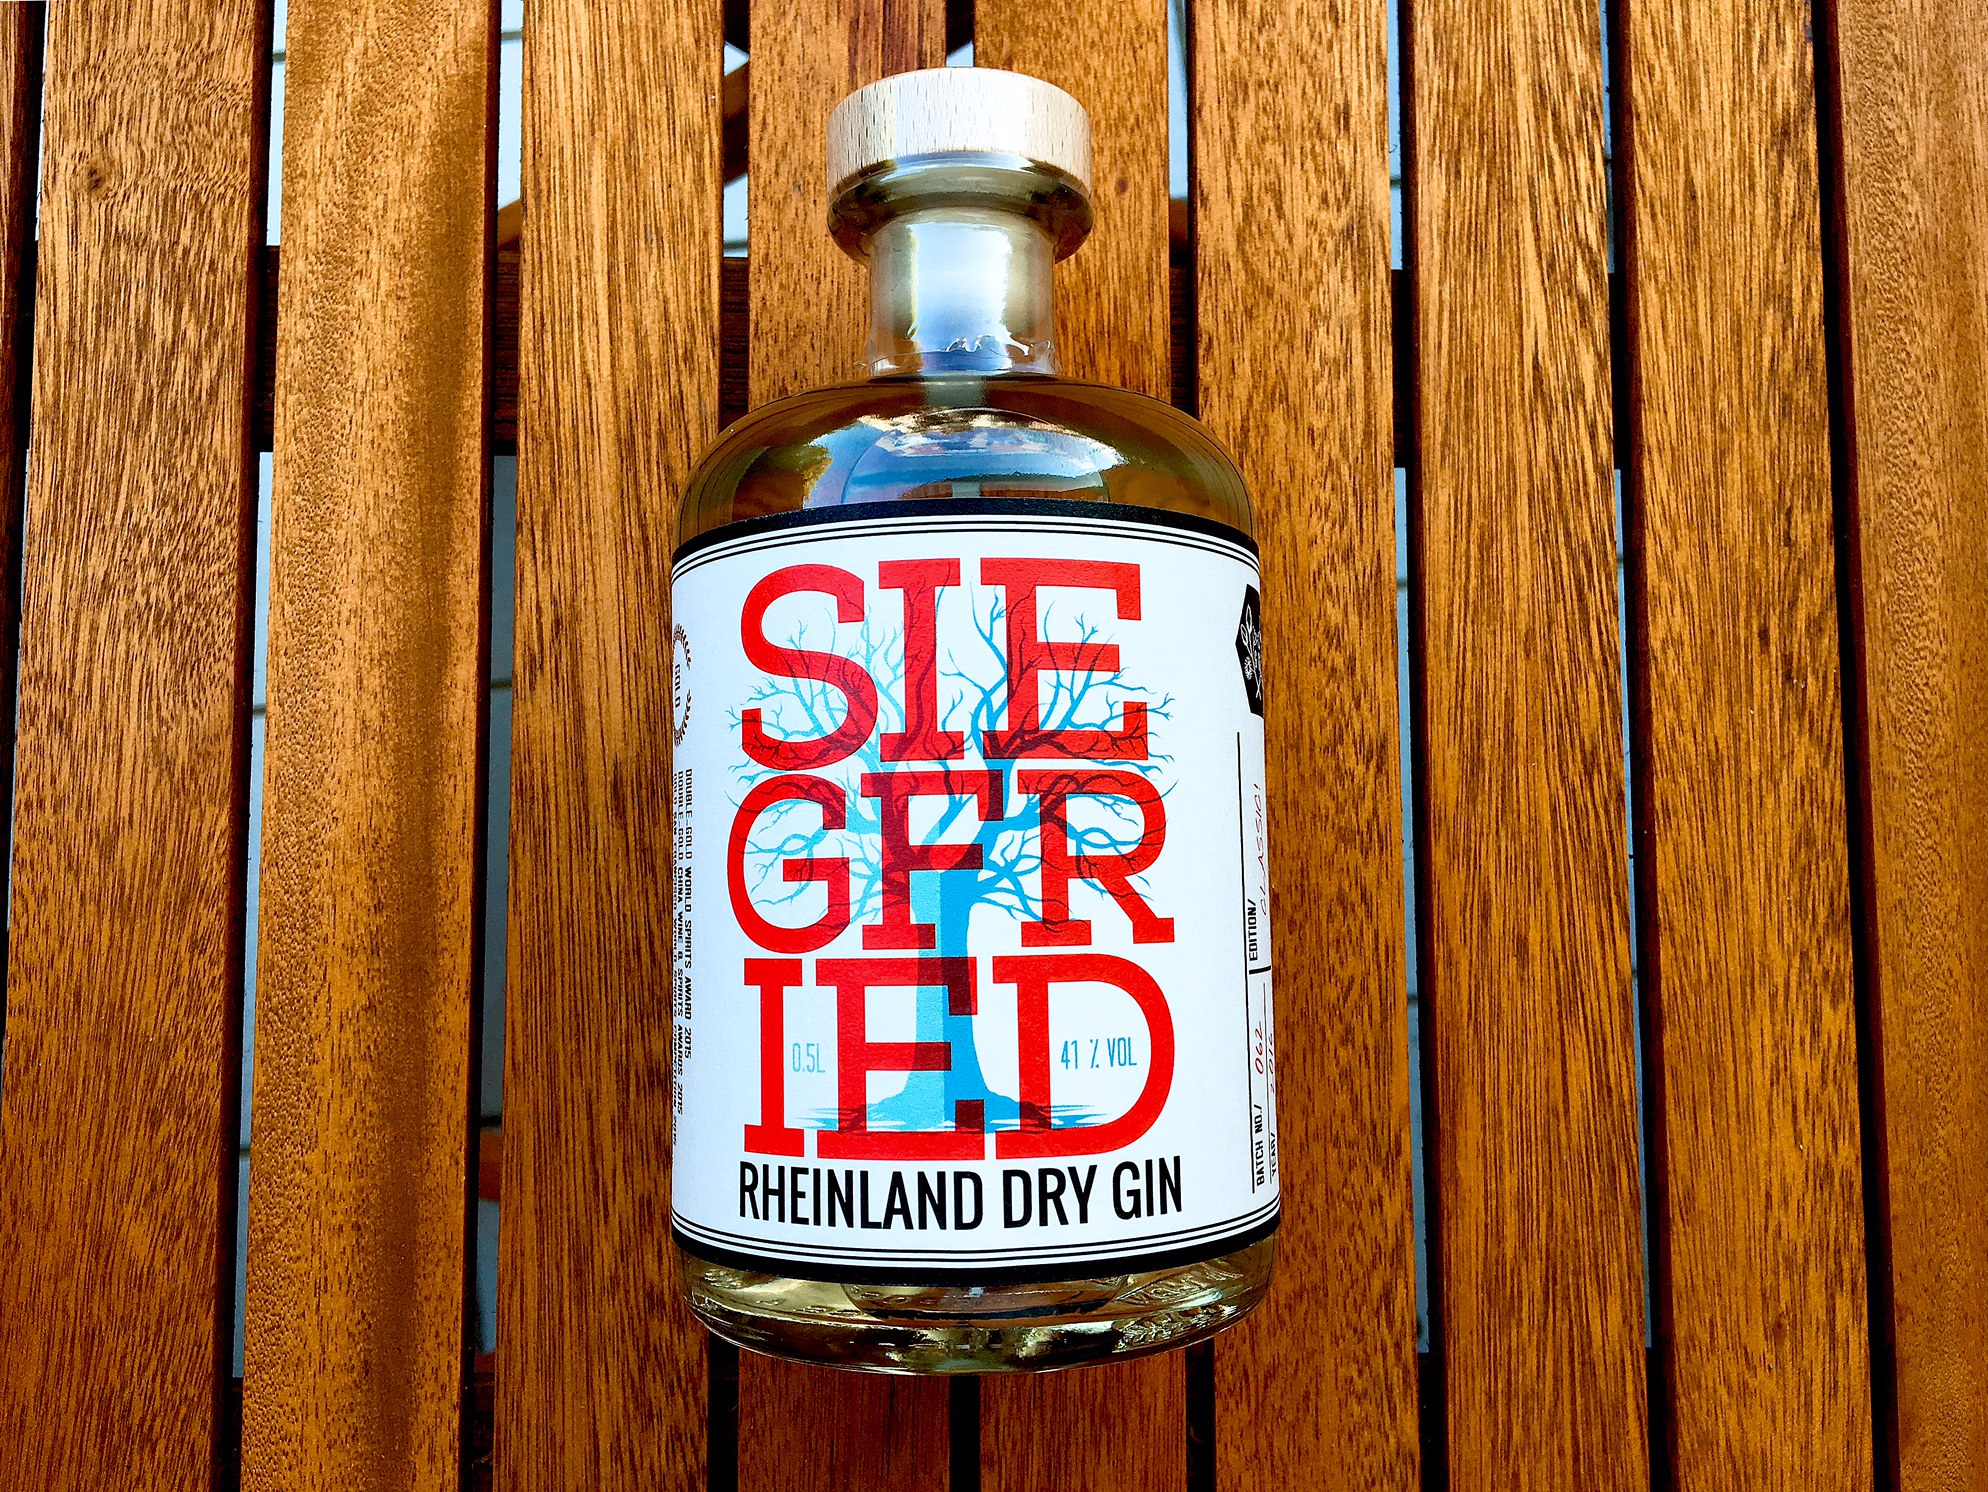 Siegfried Siggi in a bottle